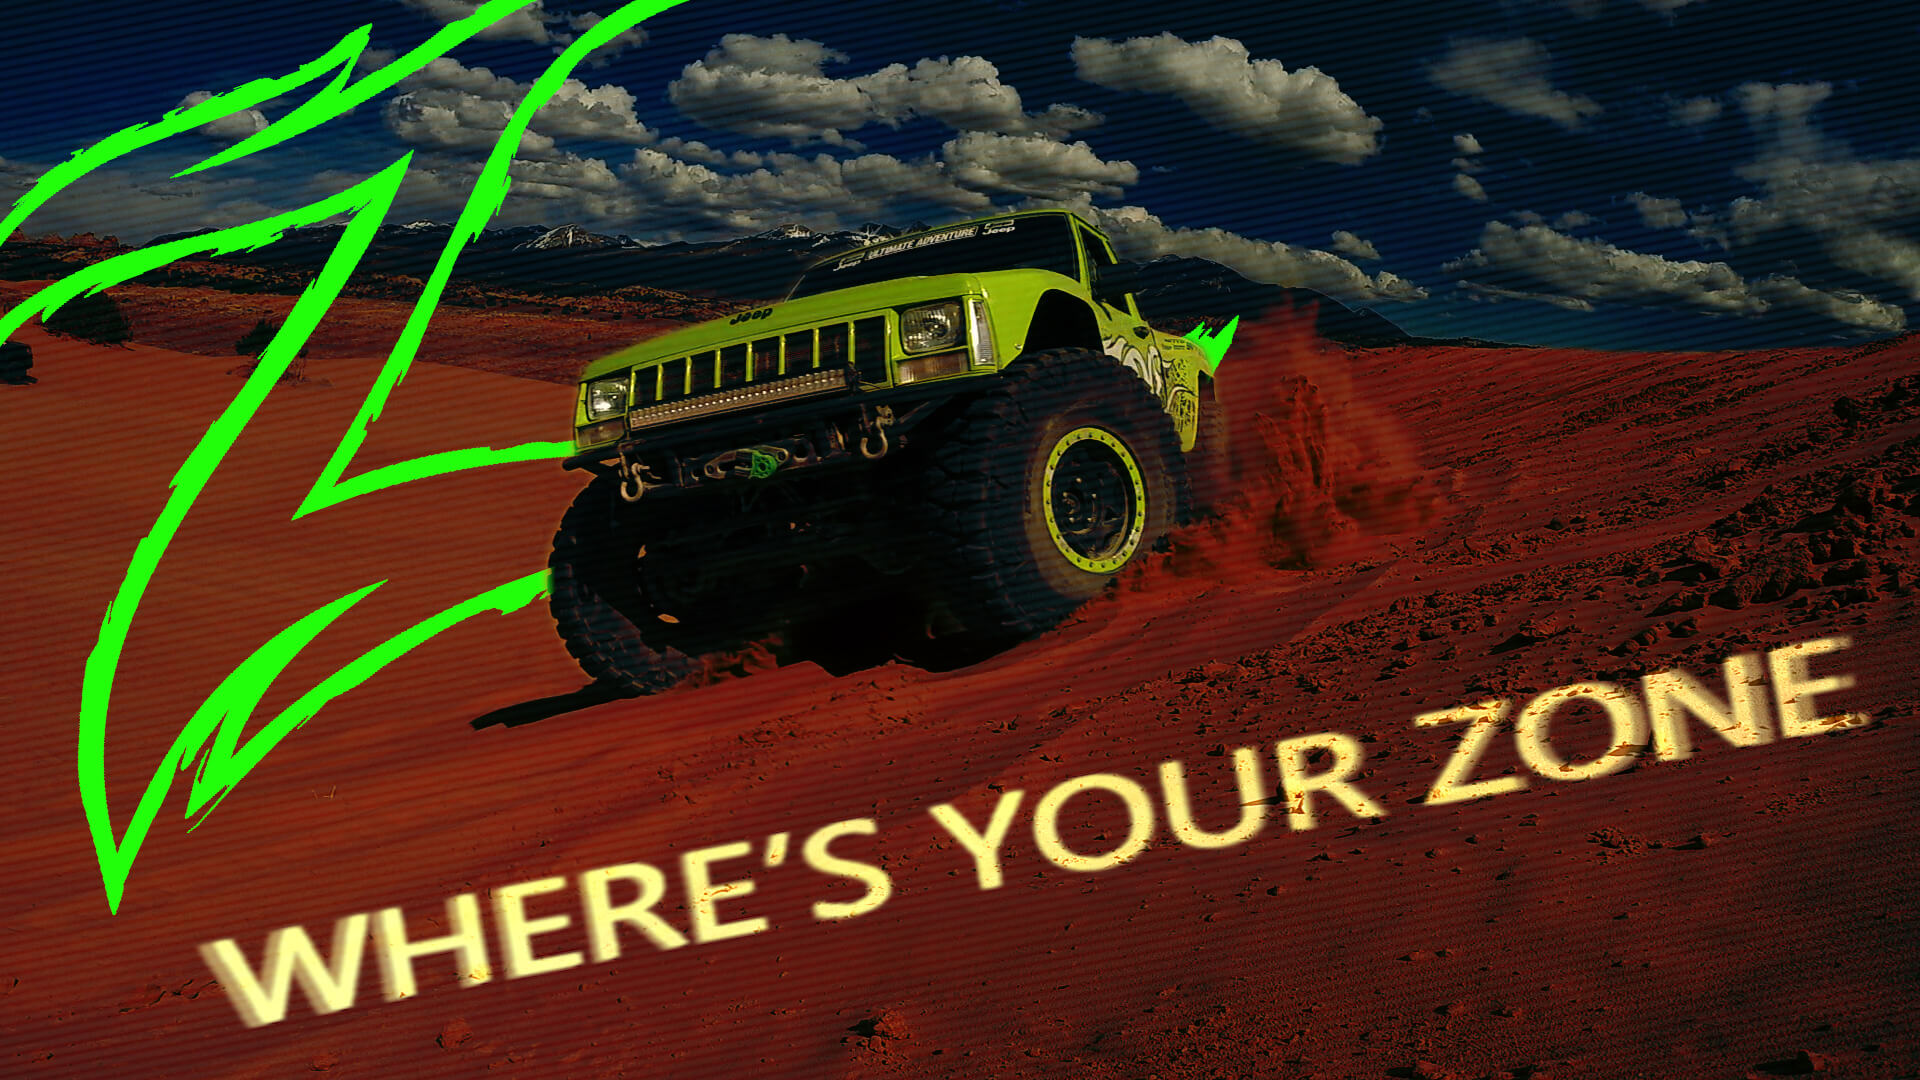 Where's Your Zone